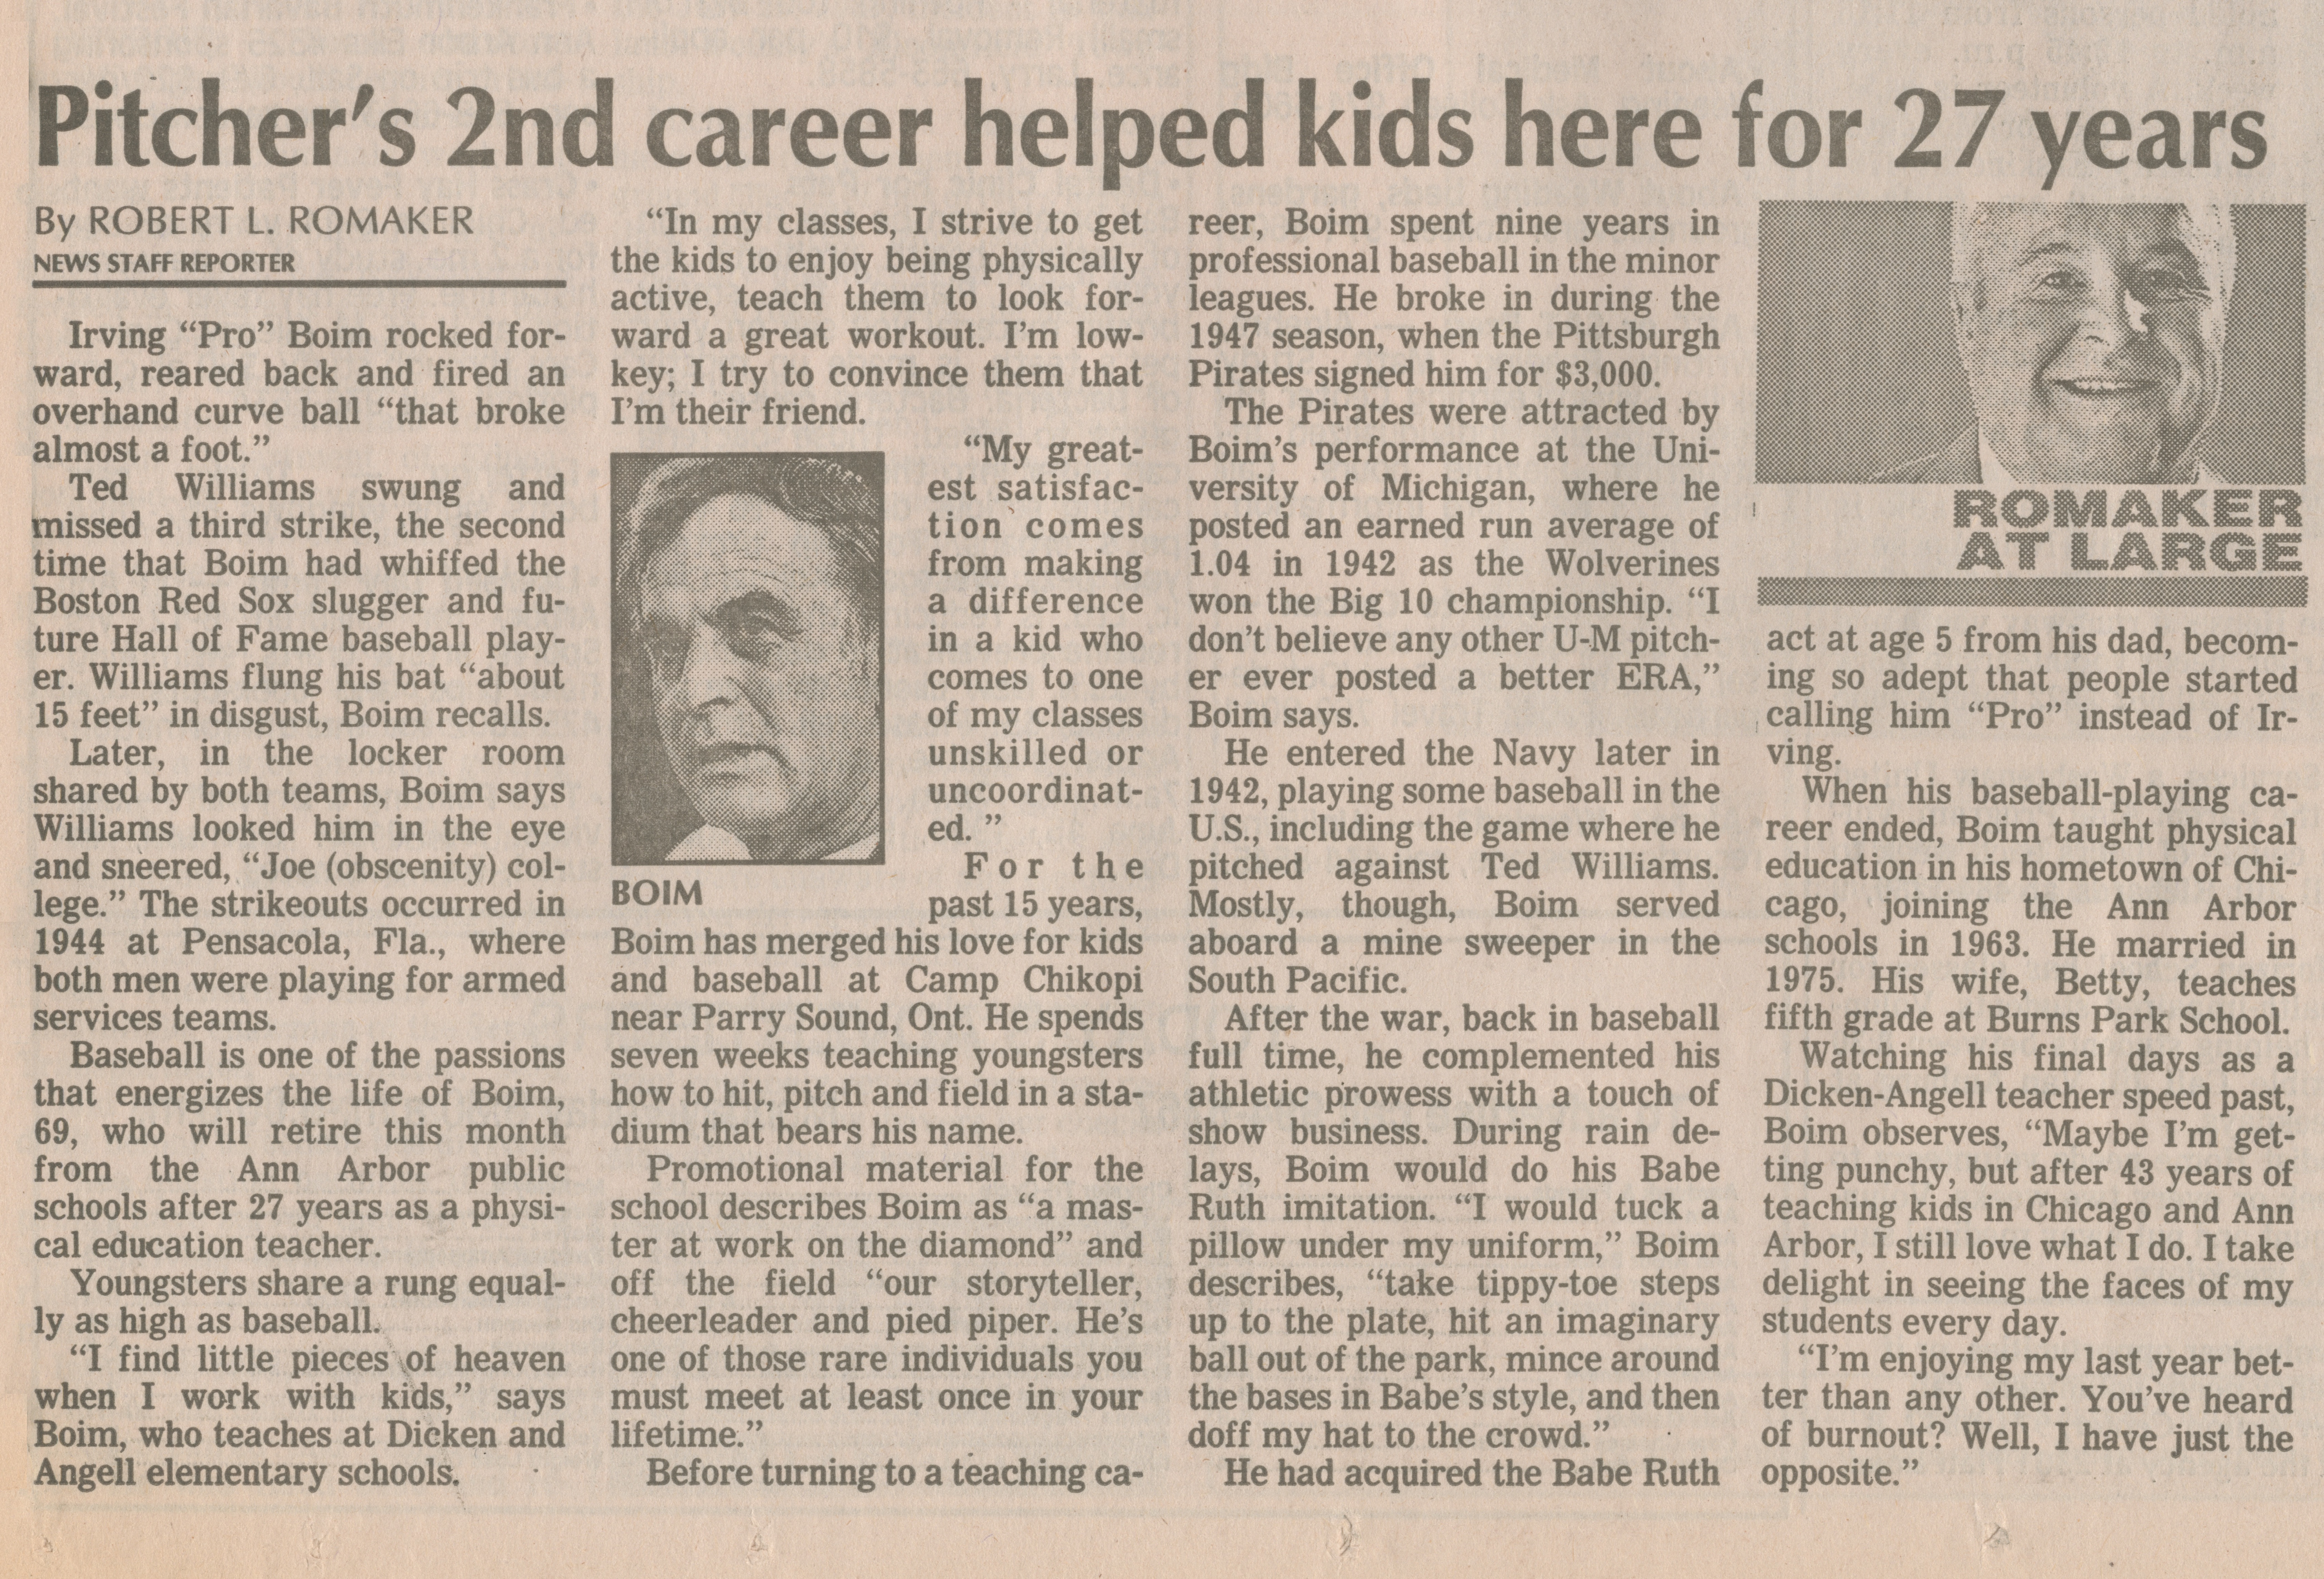 Pitcher's 2nd career helped kids here for 27 years image